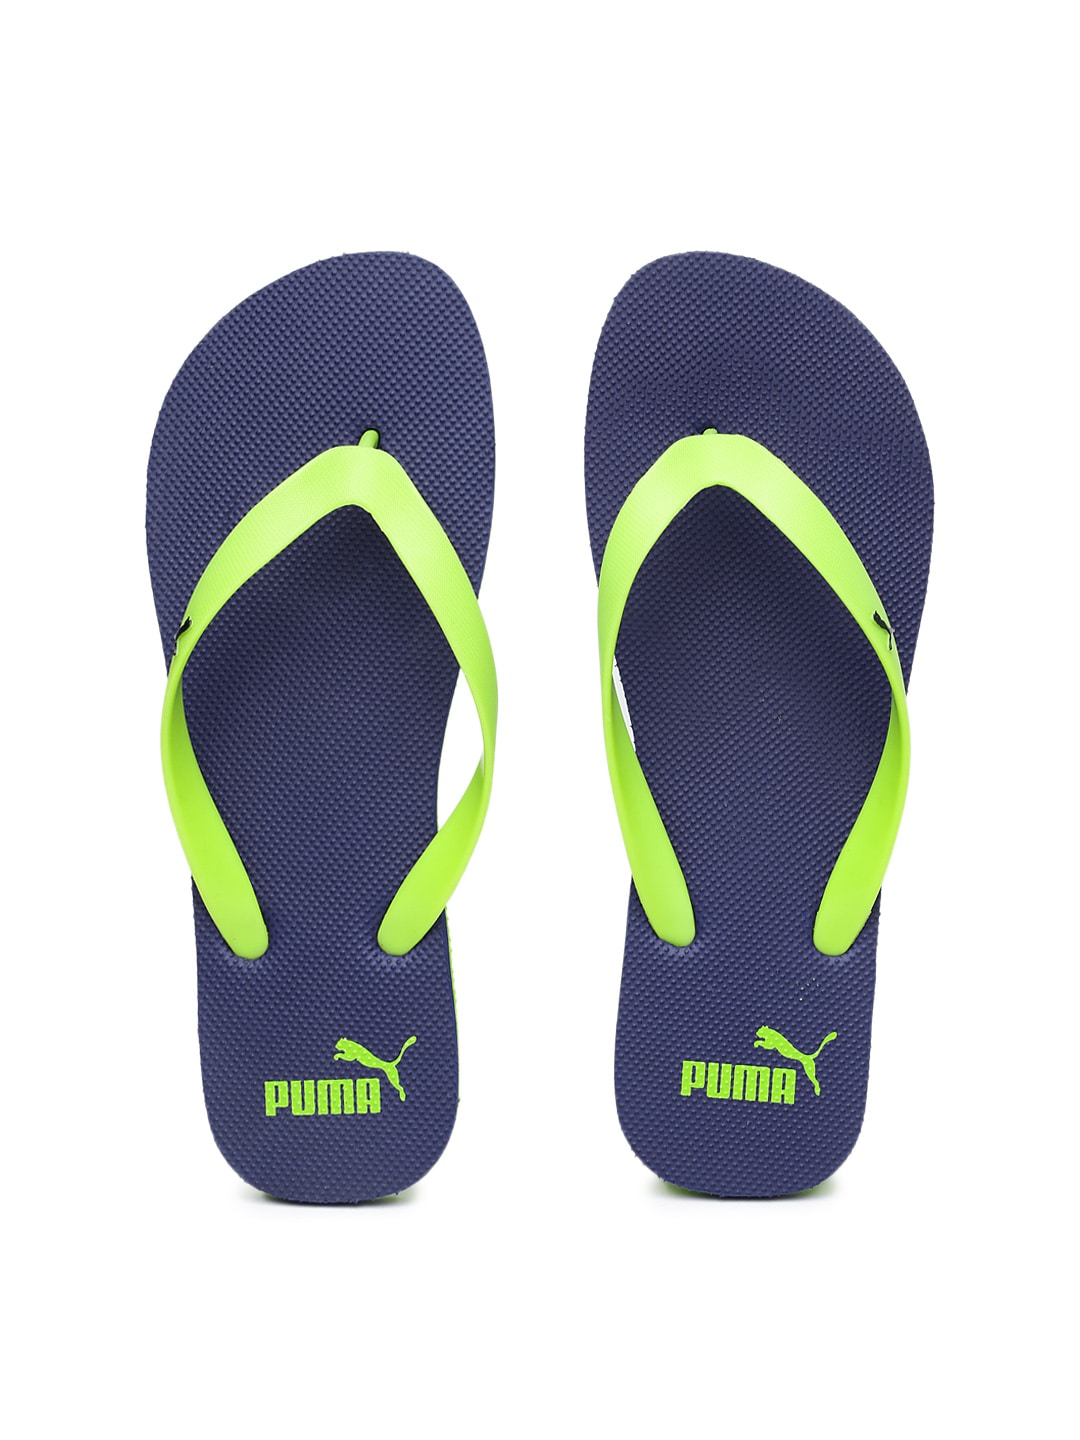 buy puma men neon green navy flip flops flip flops for. Black Bedroom Furniture Sets. Home Design Ideas